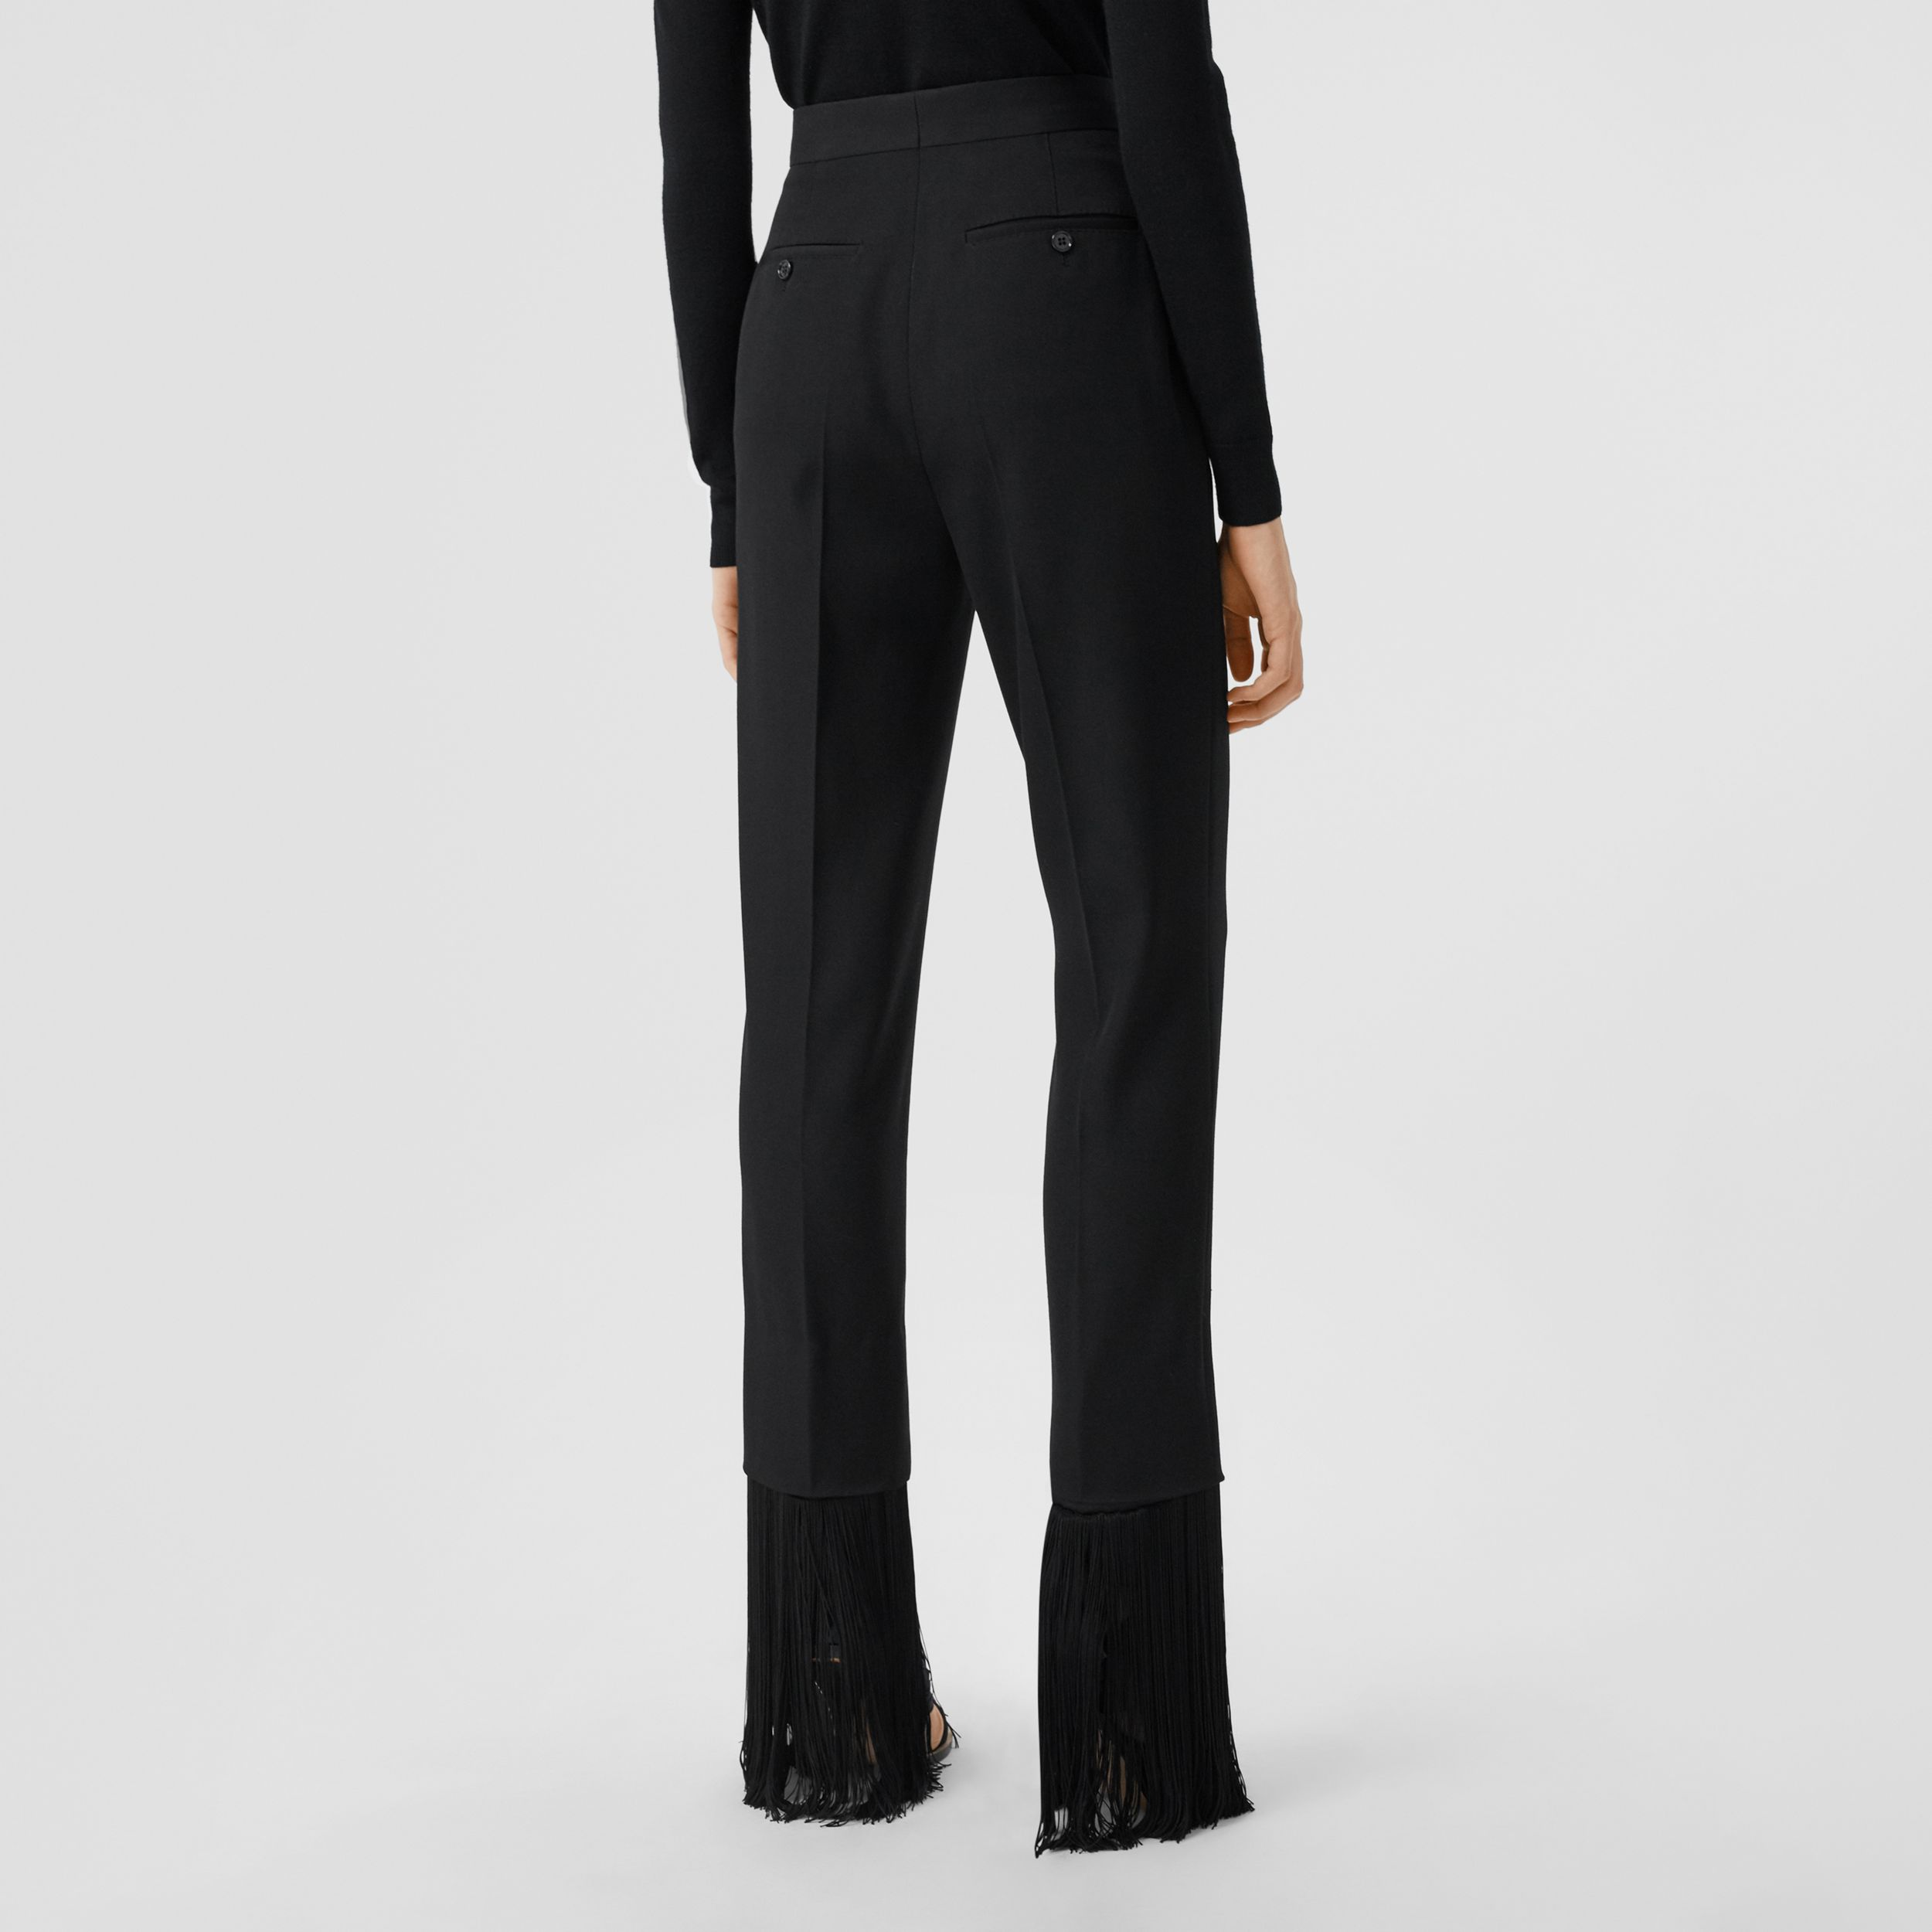 Fringed Grain De Poudre Wool Tailored Trousers in Black - Women | Burberry - 3